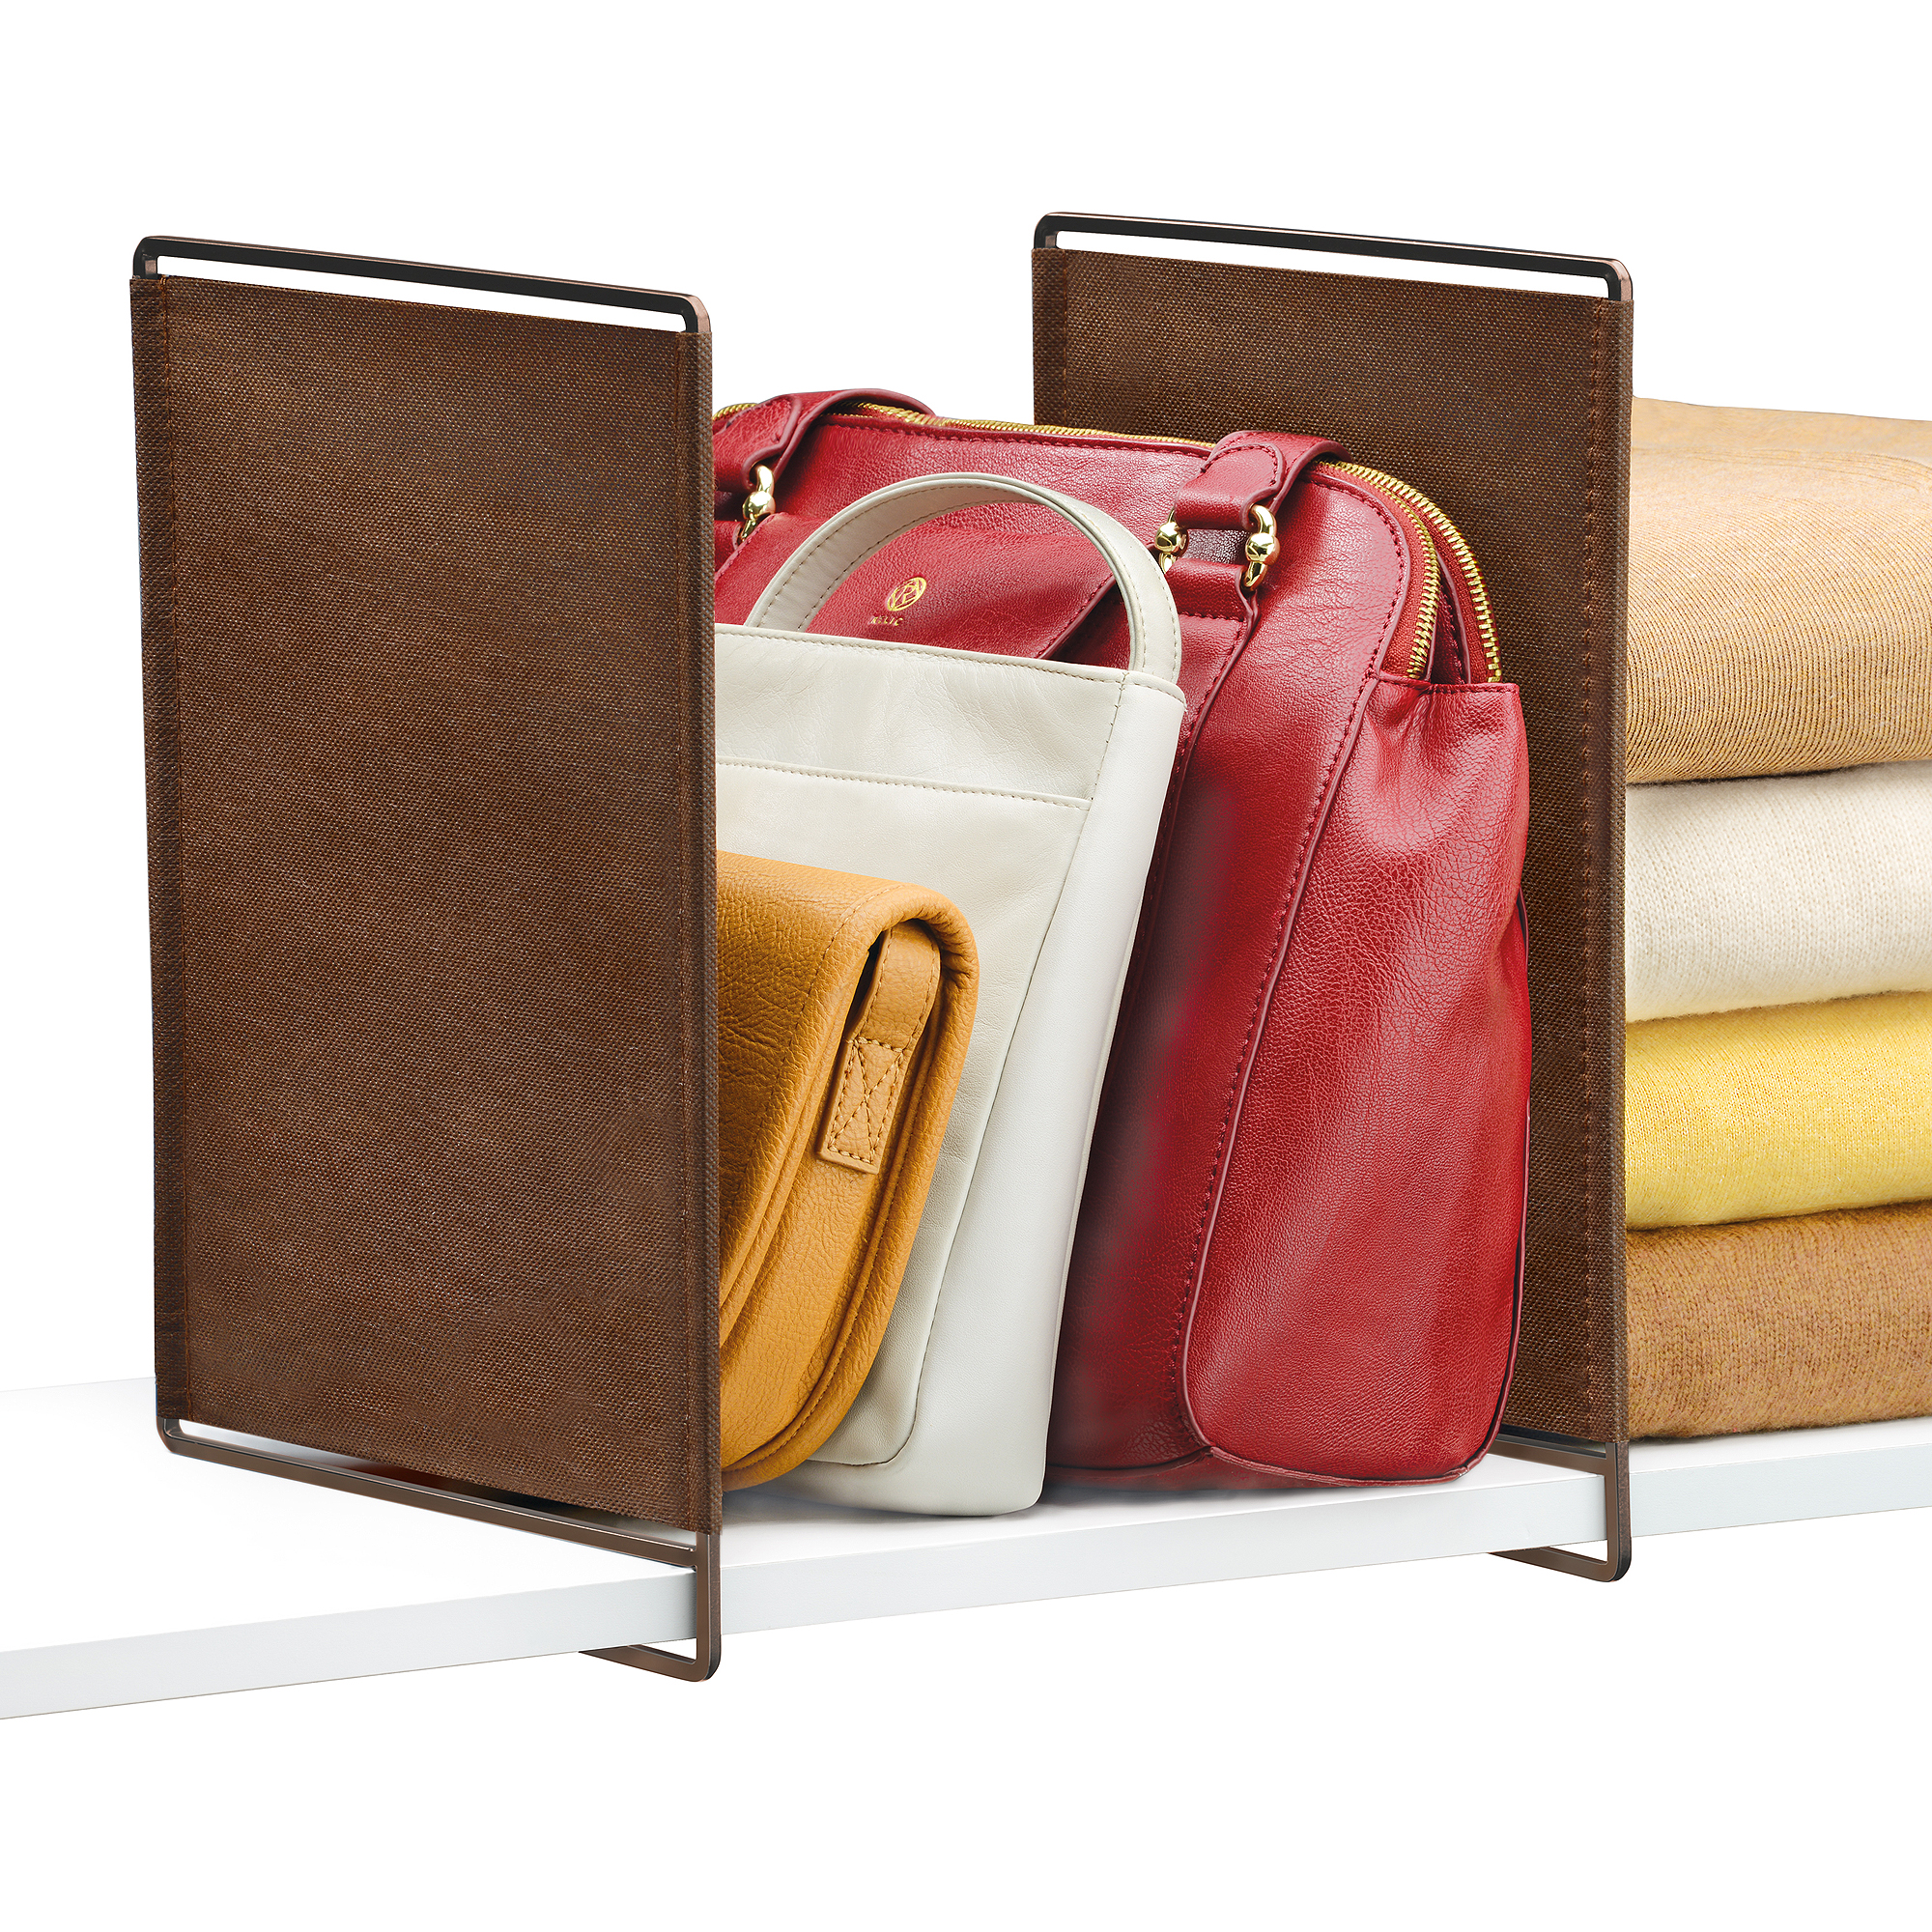 Lynk Vela Shelf Dividers, Closet Shelf Organizer (Set of 2) - Bronze